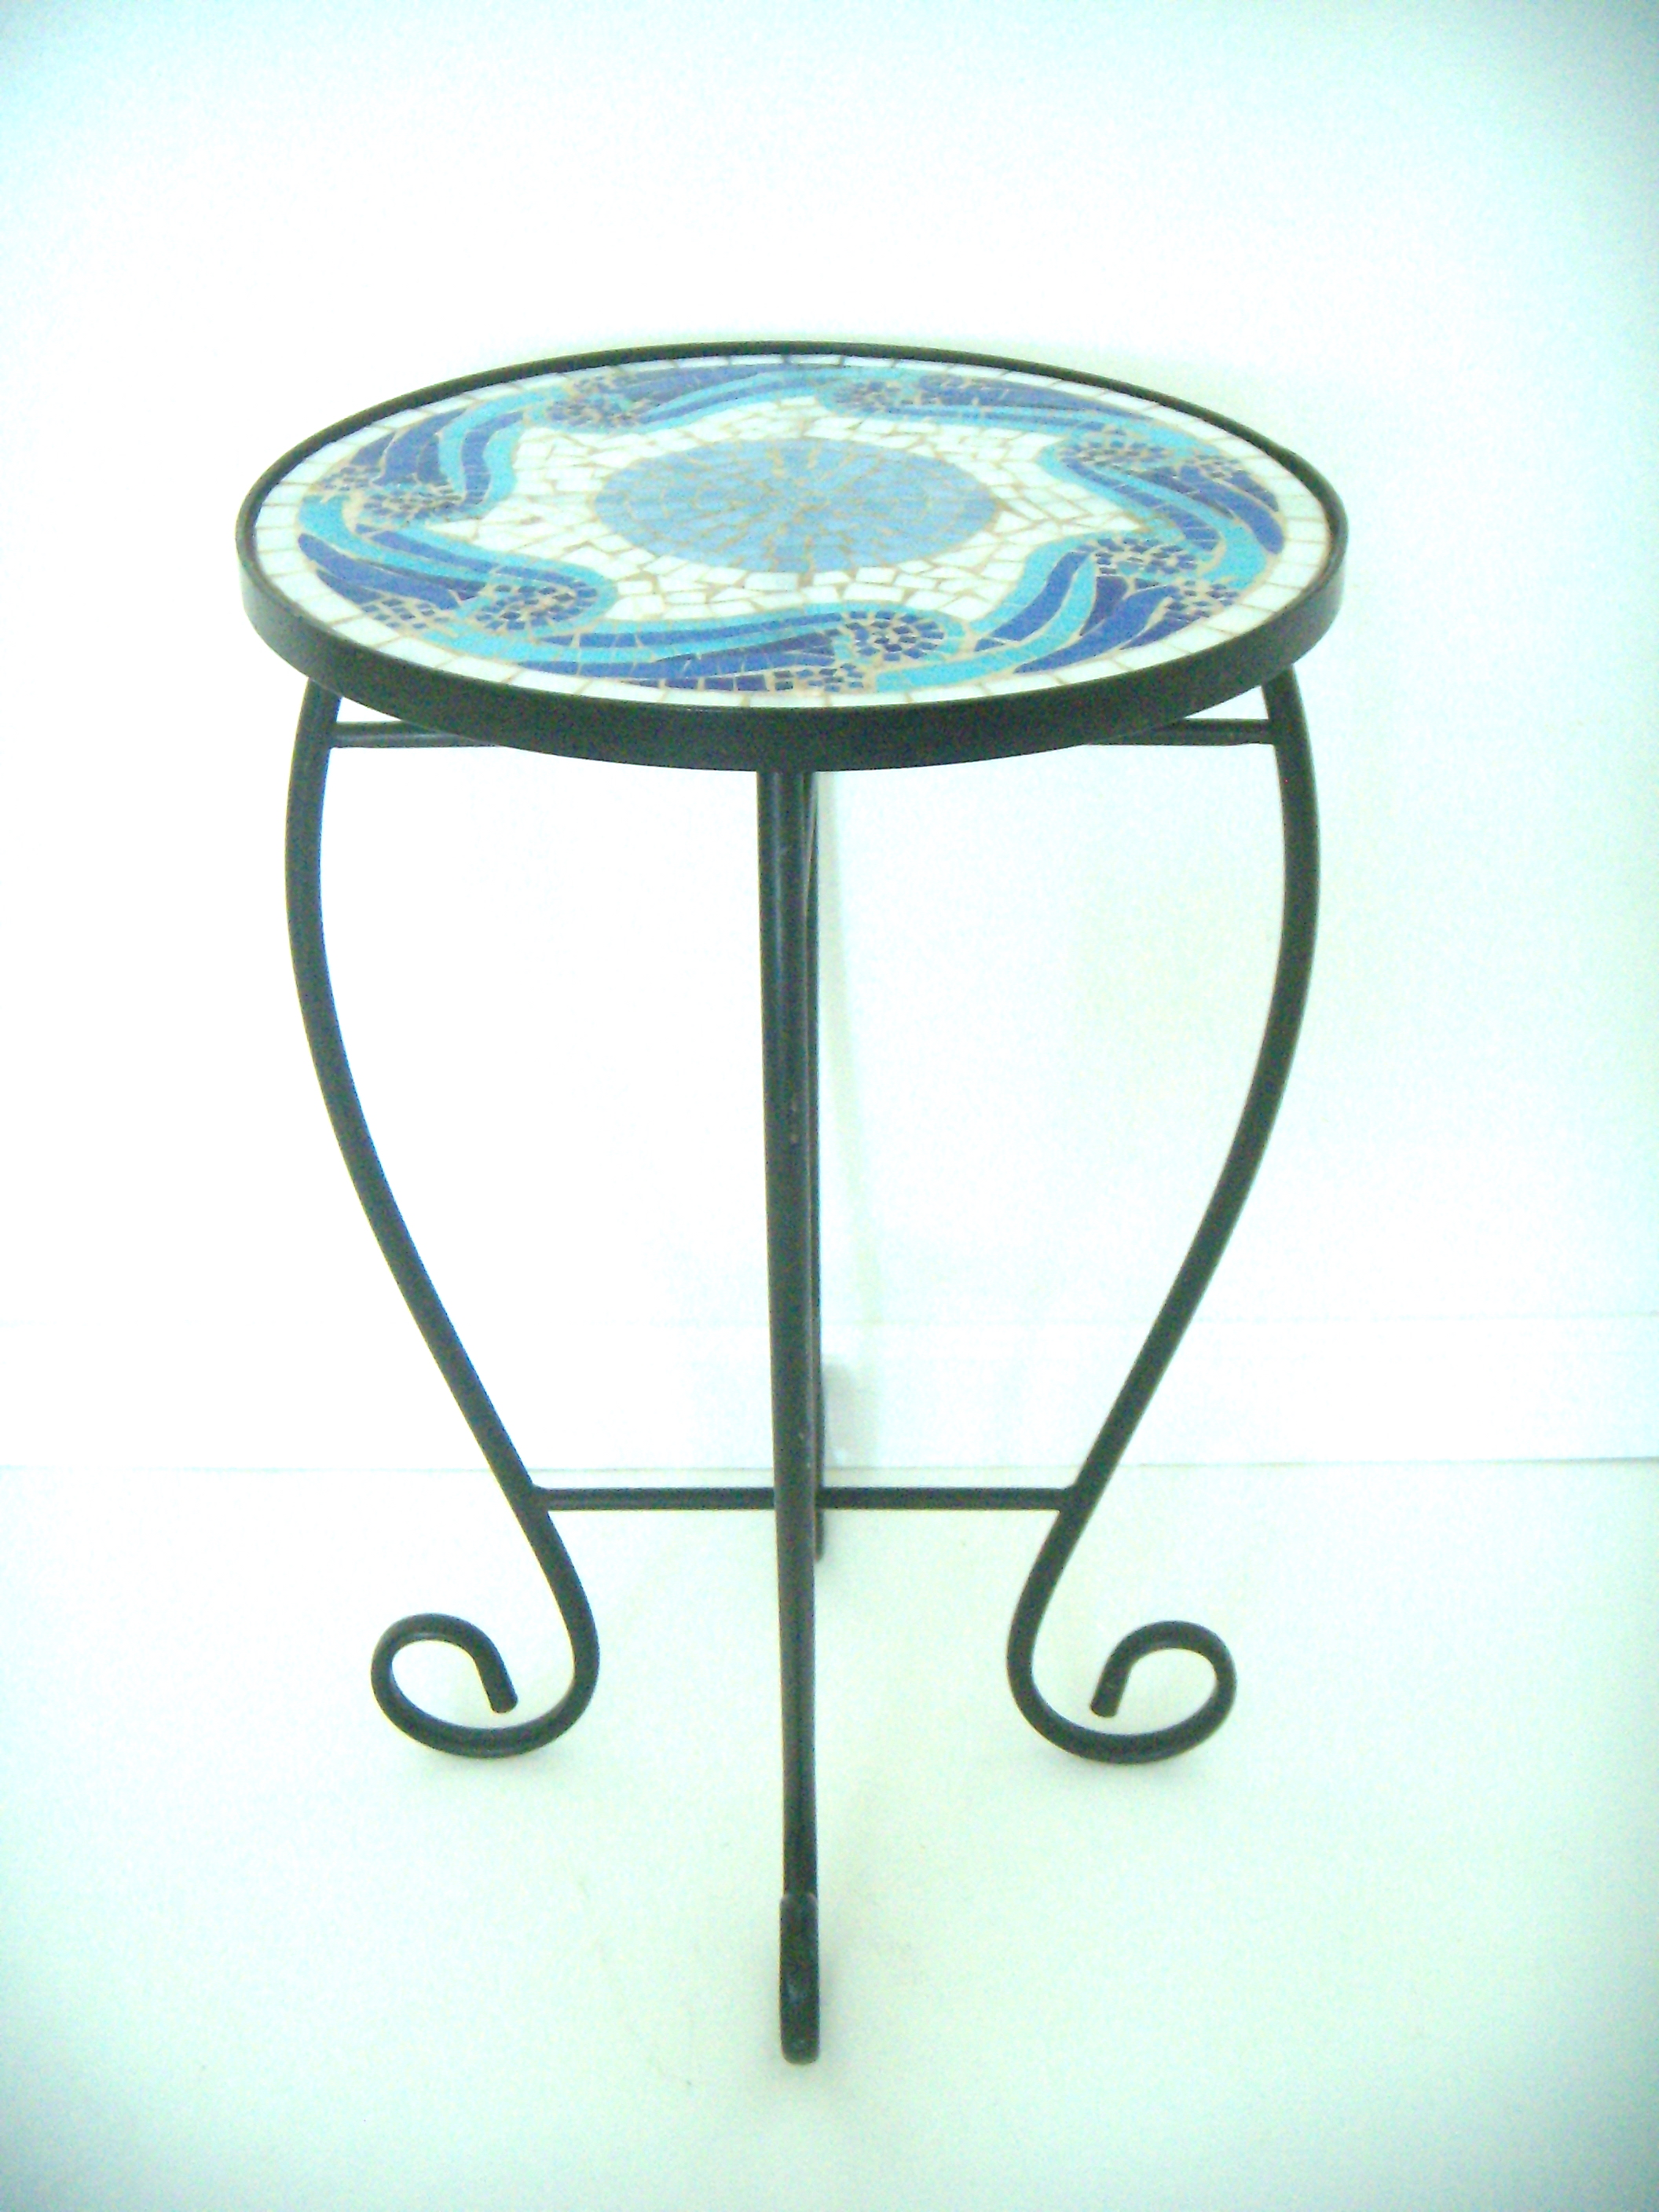 Beau Black Wrought Iron Side Table W/Blue Mosaic Top   Image 2 Of 4